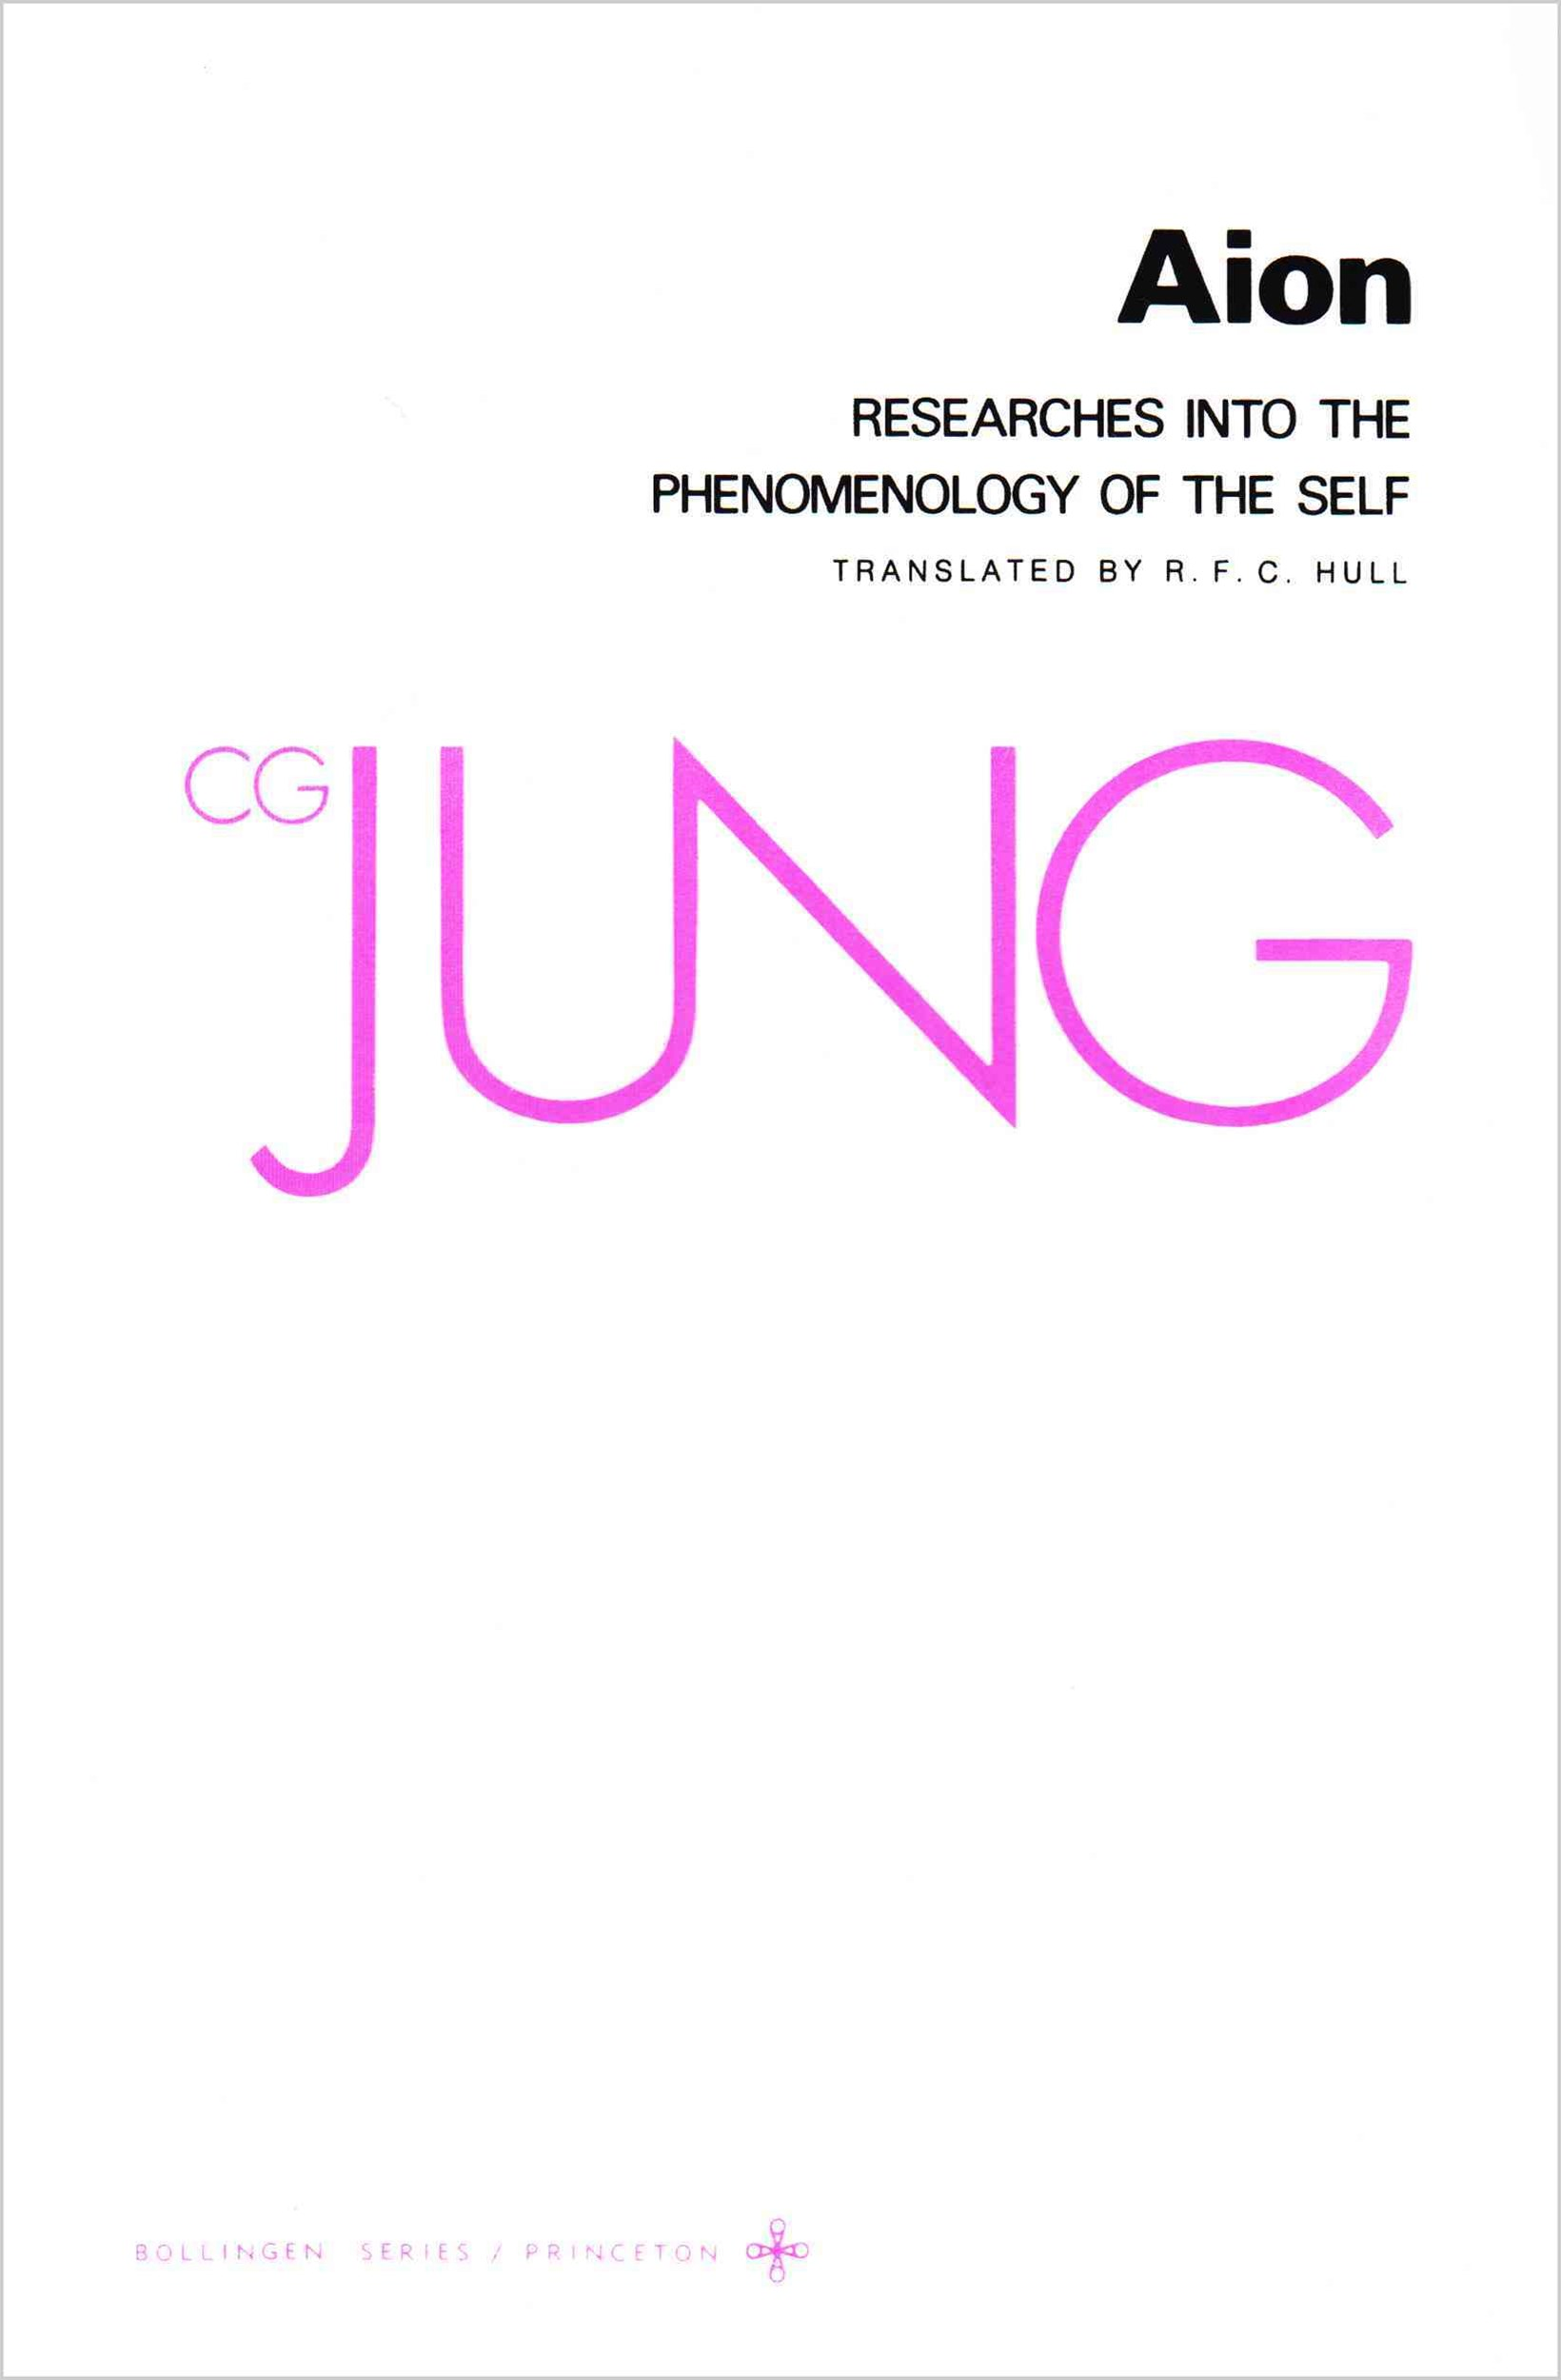 Aion - Researches into the Phenomenology of the Self